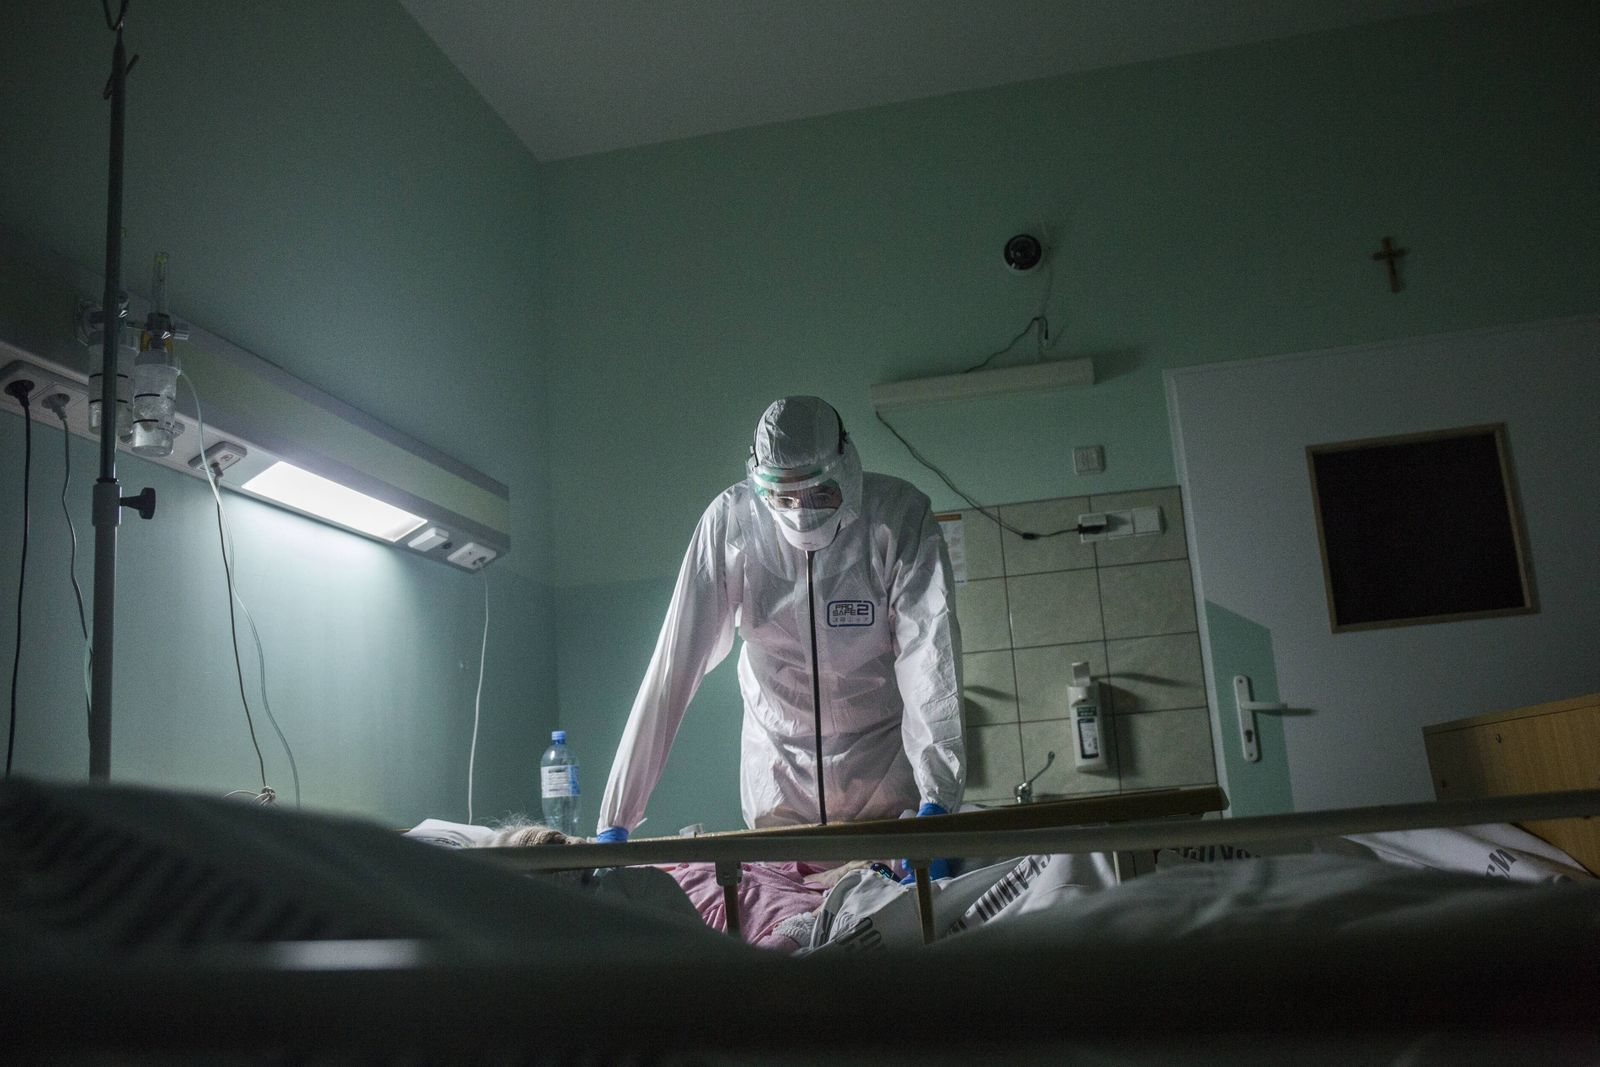 Jerzy Gromkowsk Provincial Specialist Hospital i was transformed whole into an isolation hospita due to the Sars-Cov-2 c